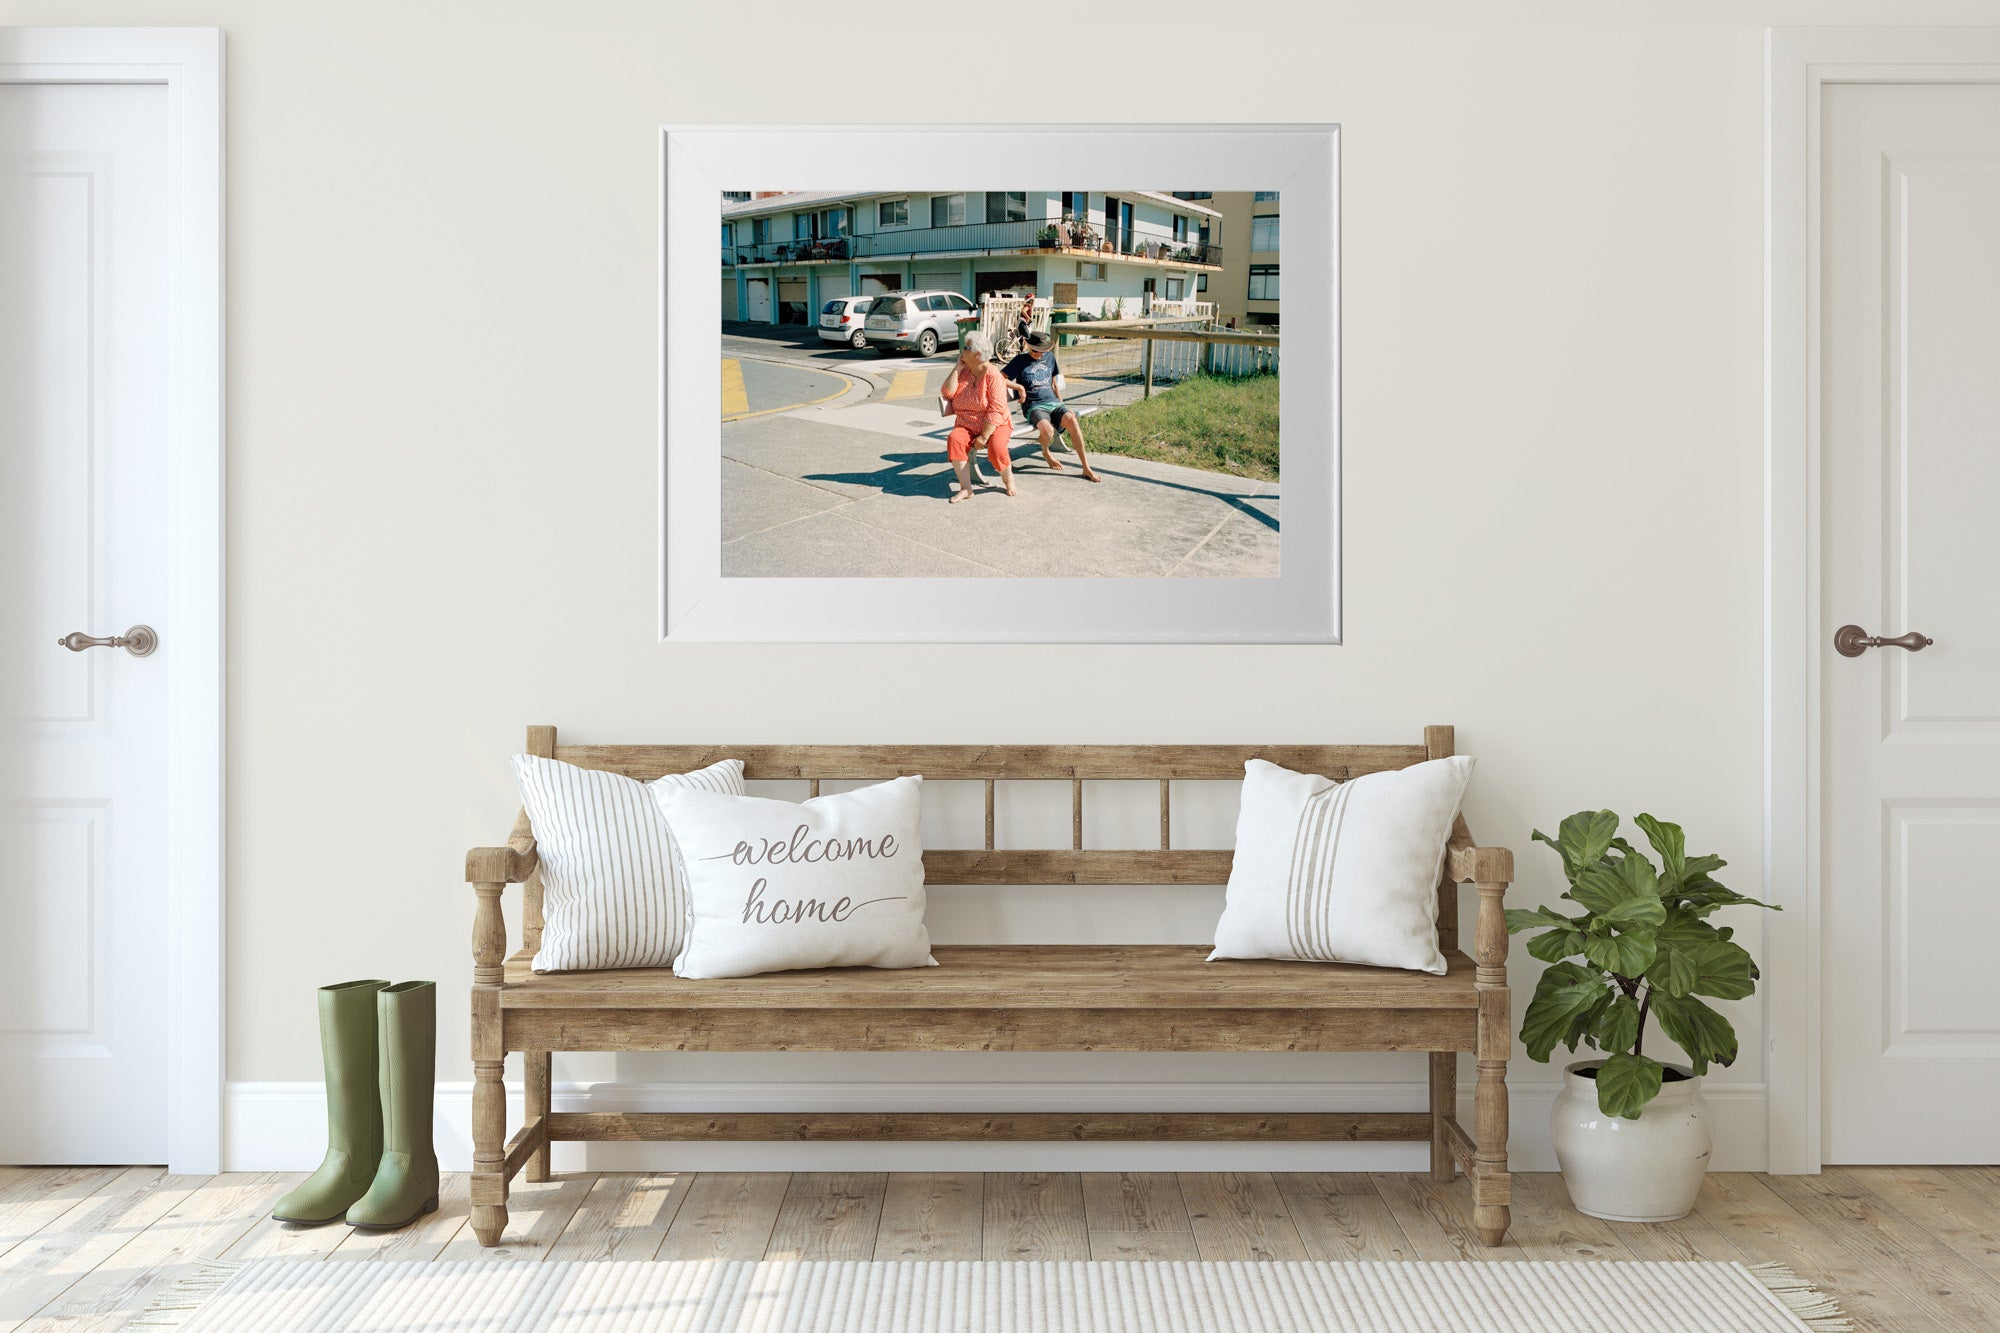 """A photograph of an elderly couple sitting on a bench near the beach, they are looking away from each other, there are old building in the background."" Artwork, Prints, wall art, GoldCoast Queensland Australia, Photographic prints, Ocean Beach, Framed artwork, Beach Posters   Film photography, Vintage photo style,  Interior design, Film photography Pictures sun & surf,"